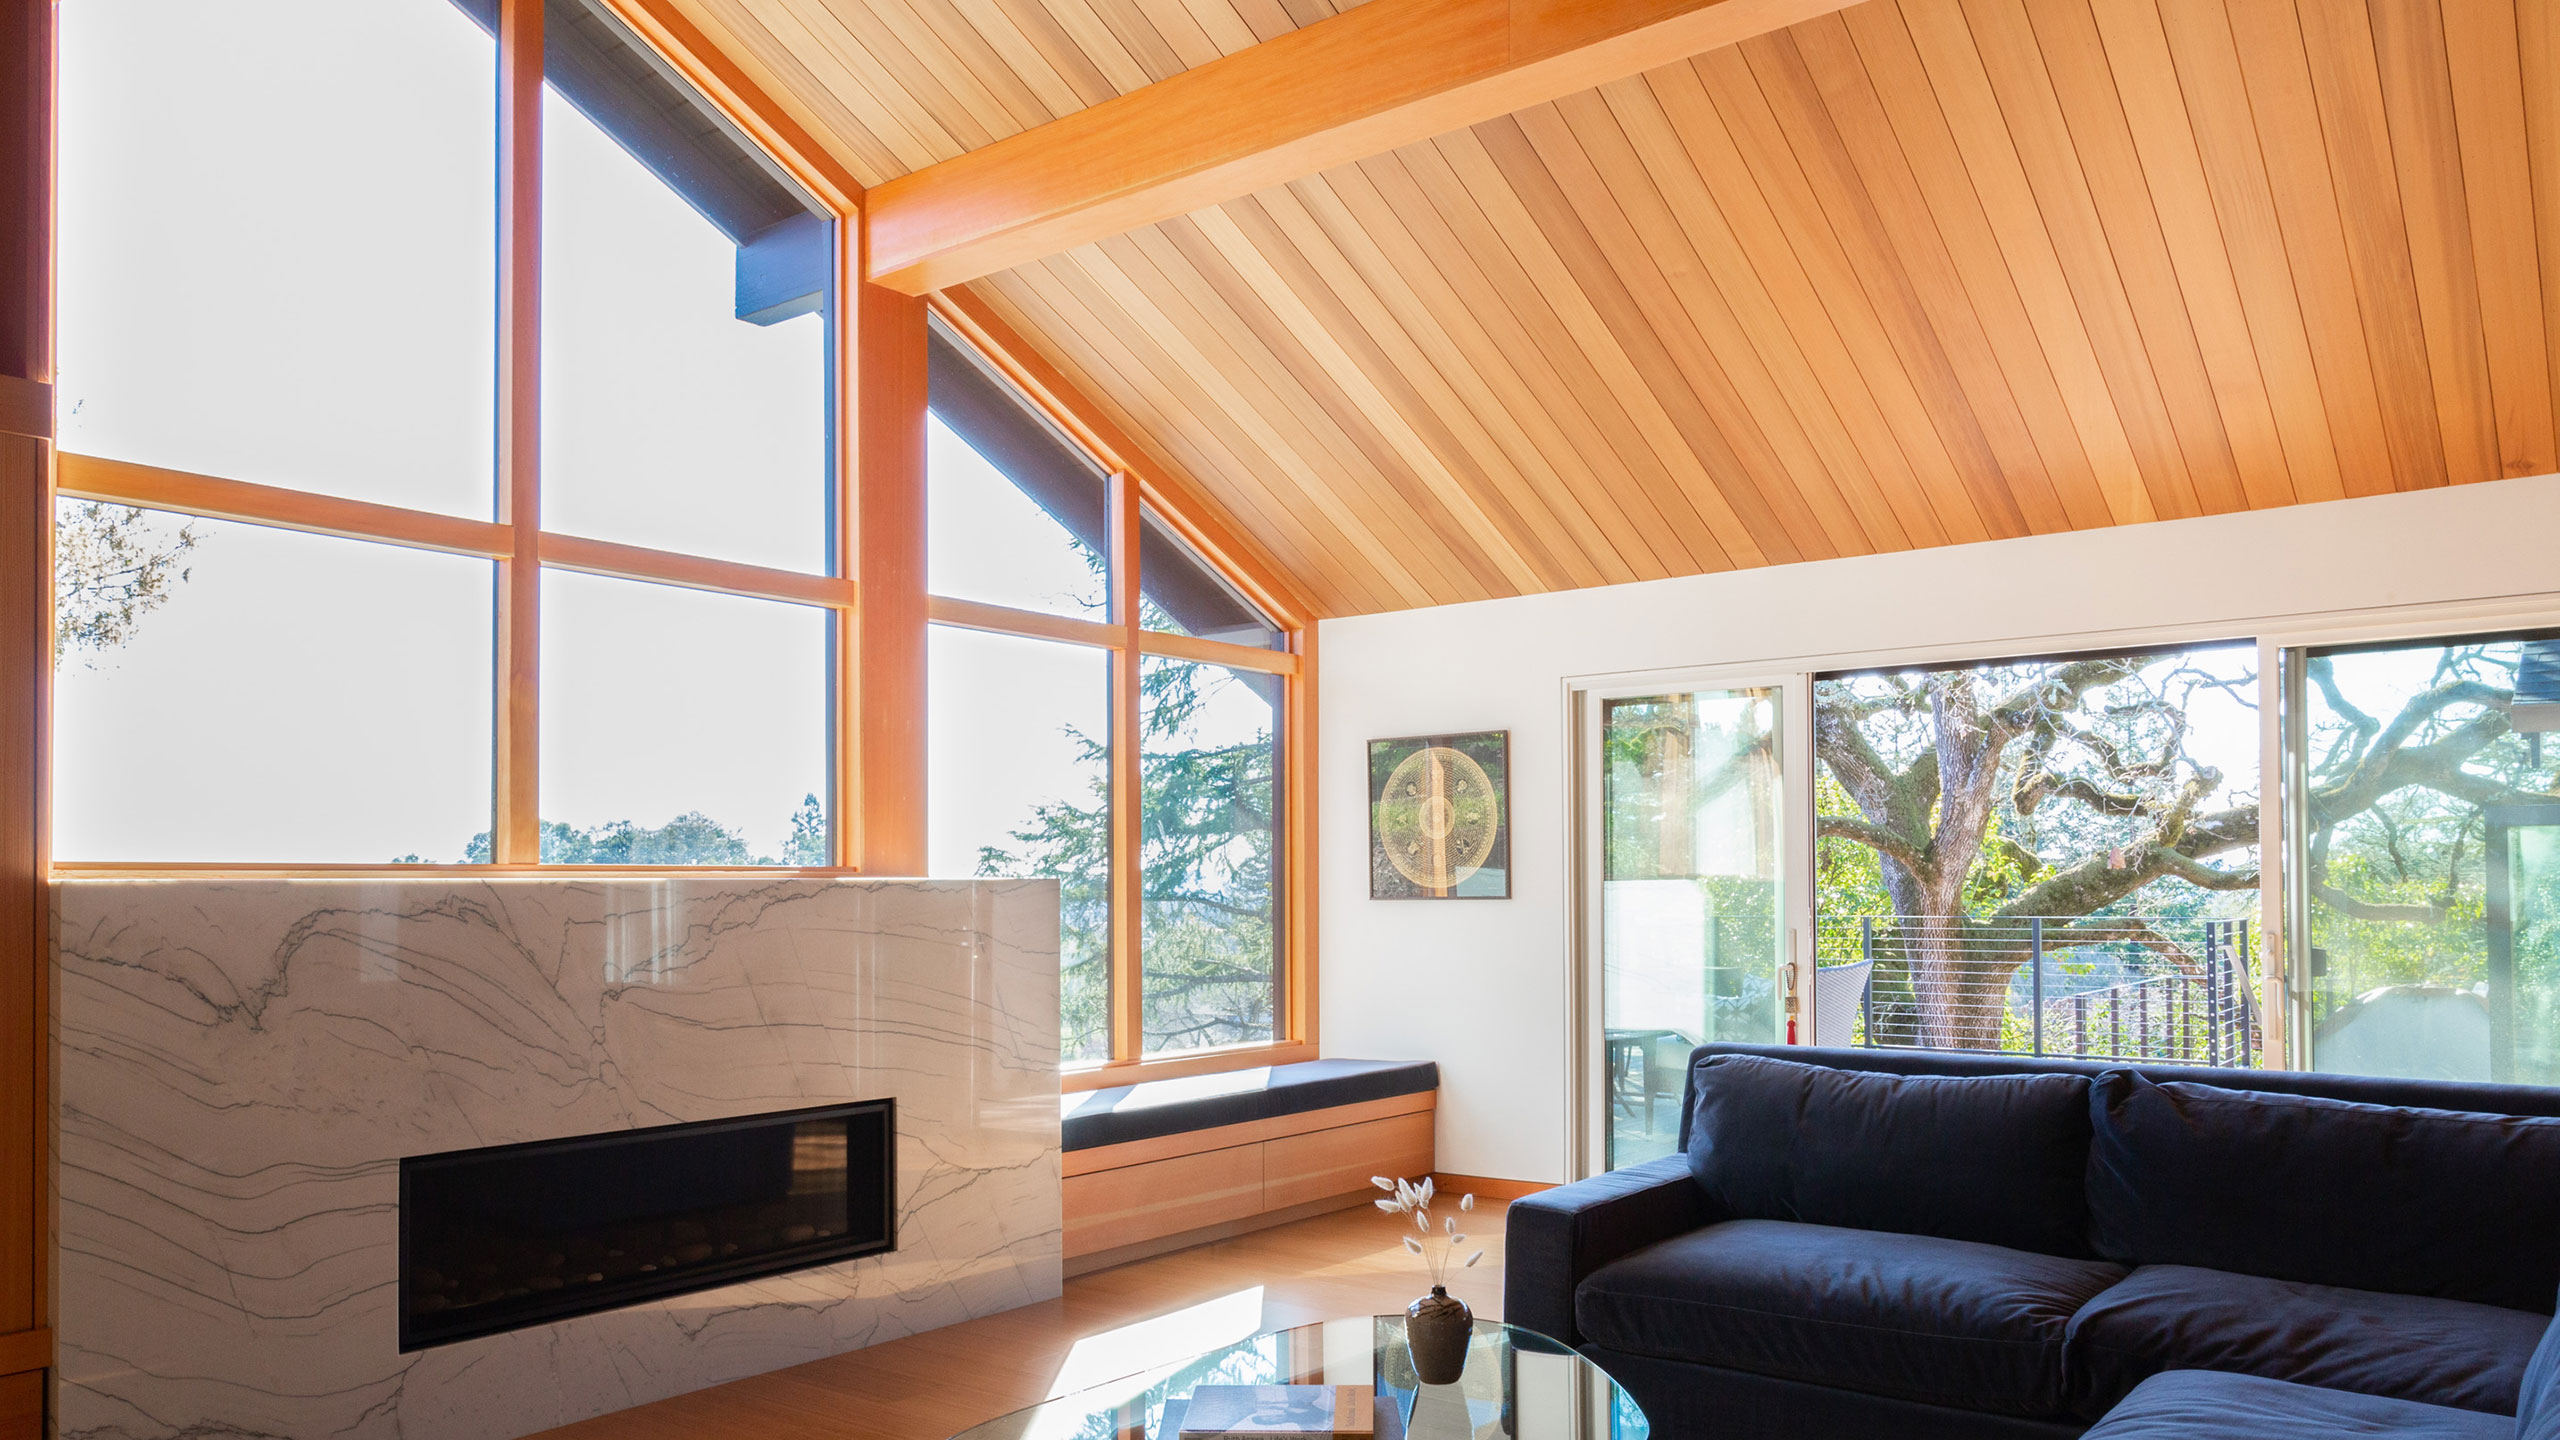 Zen-House-Santa-Rosa-marble-fireplace-bright-wood-windows-and-ceiling